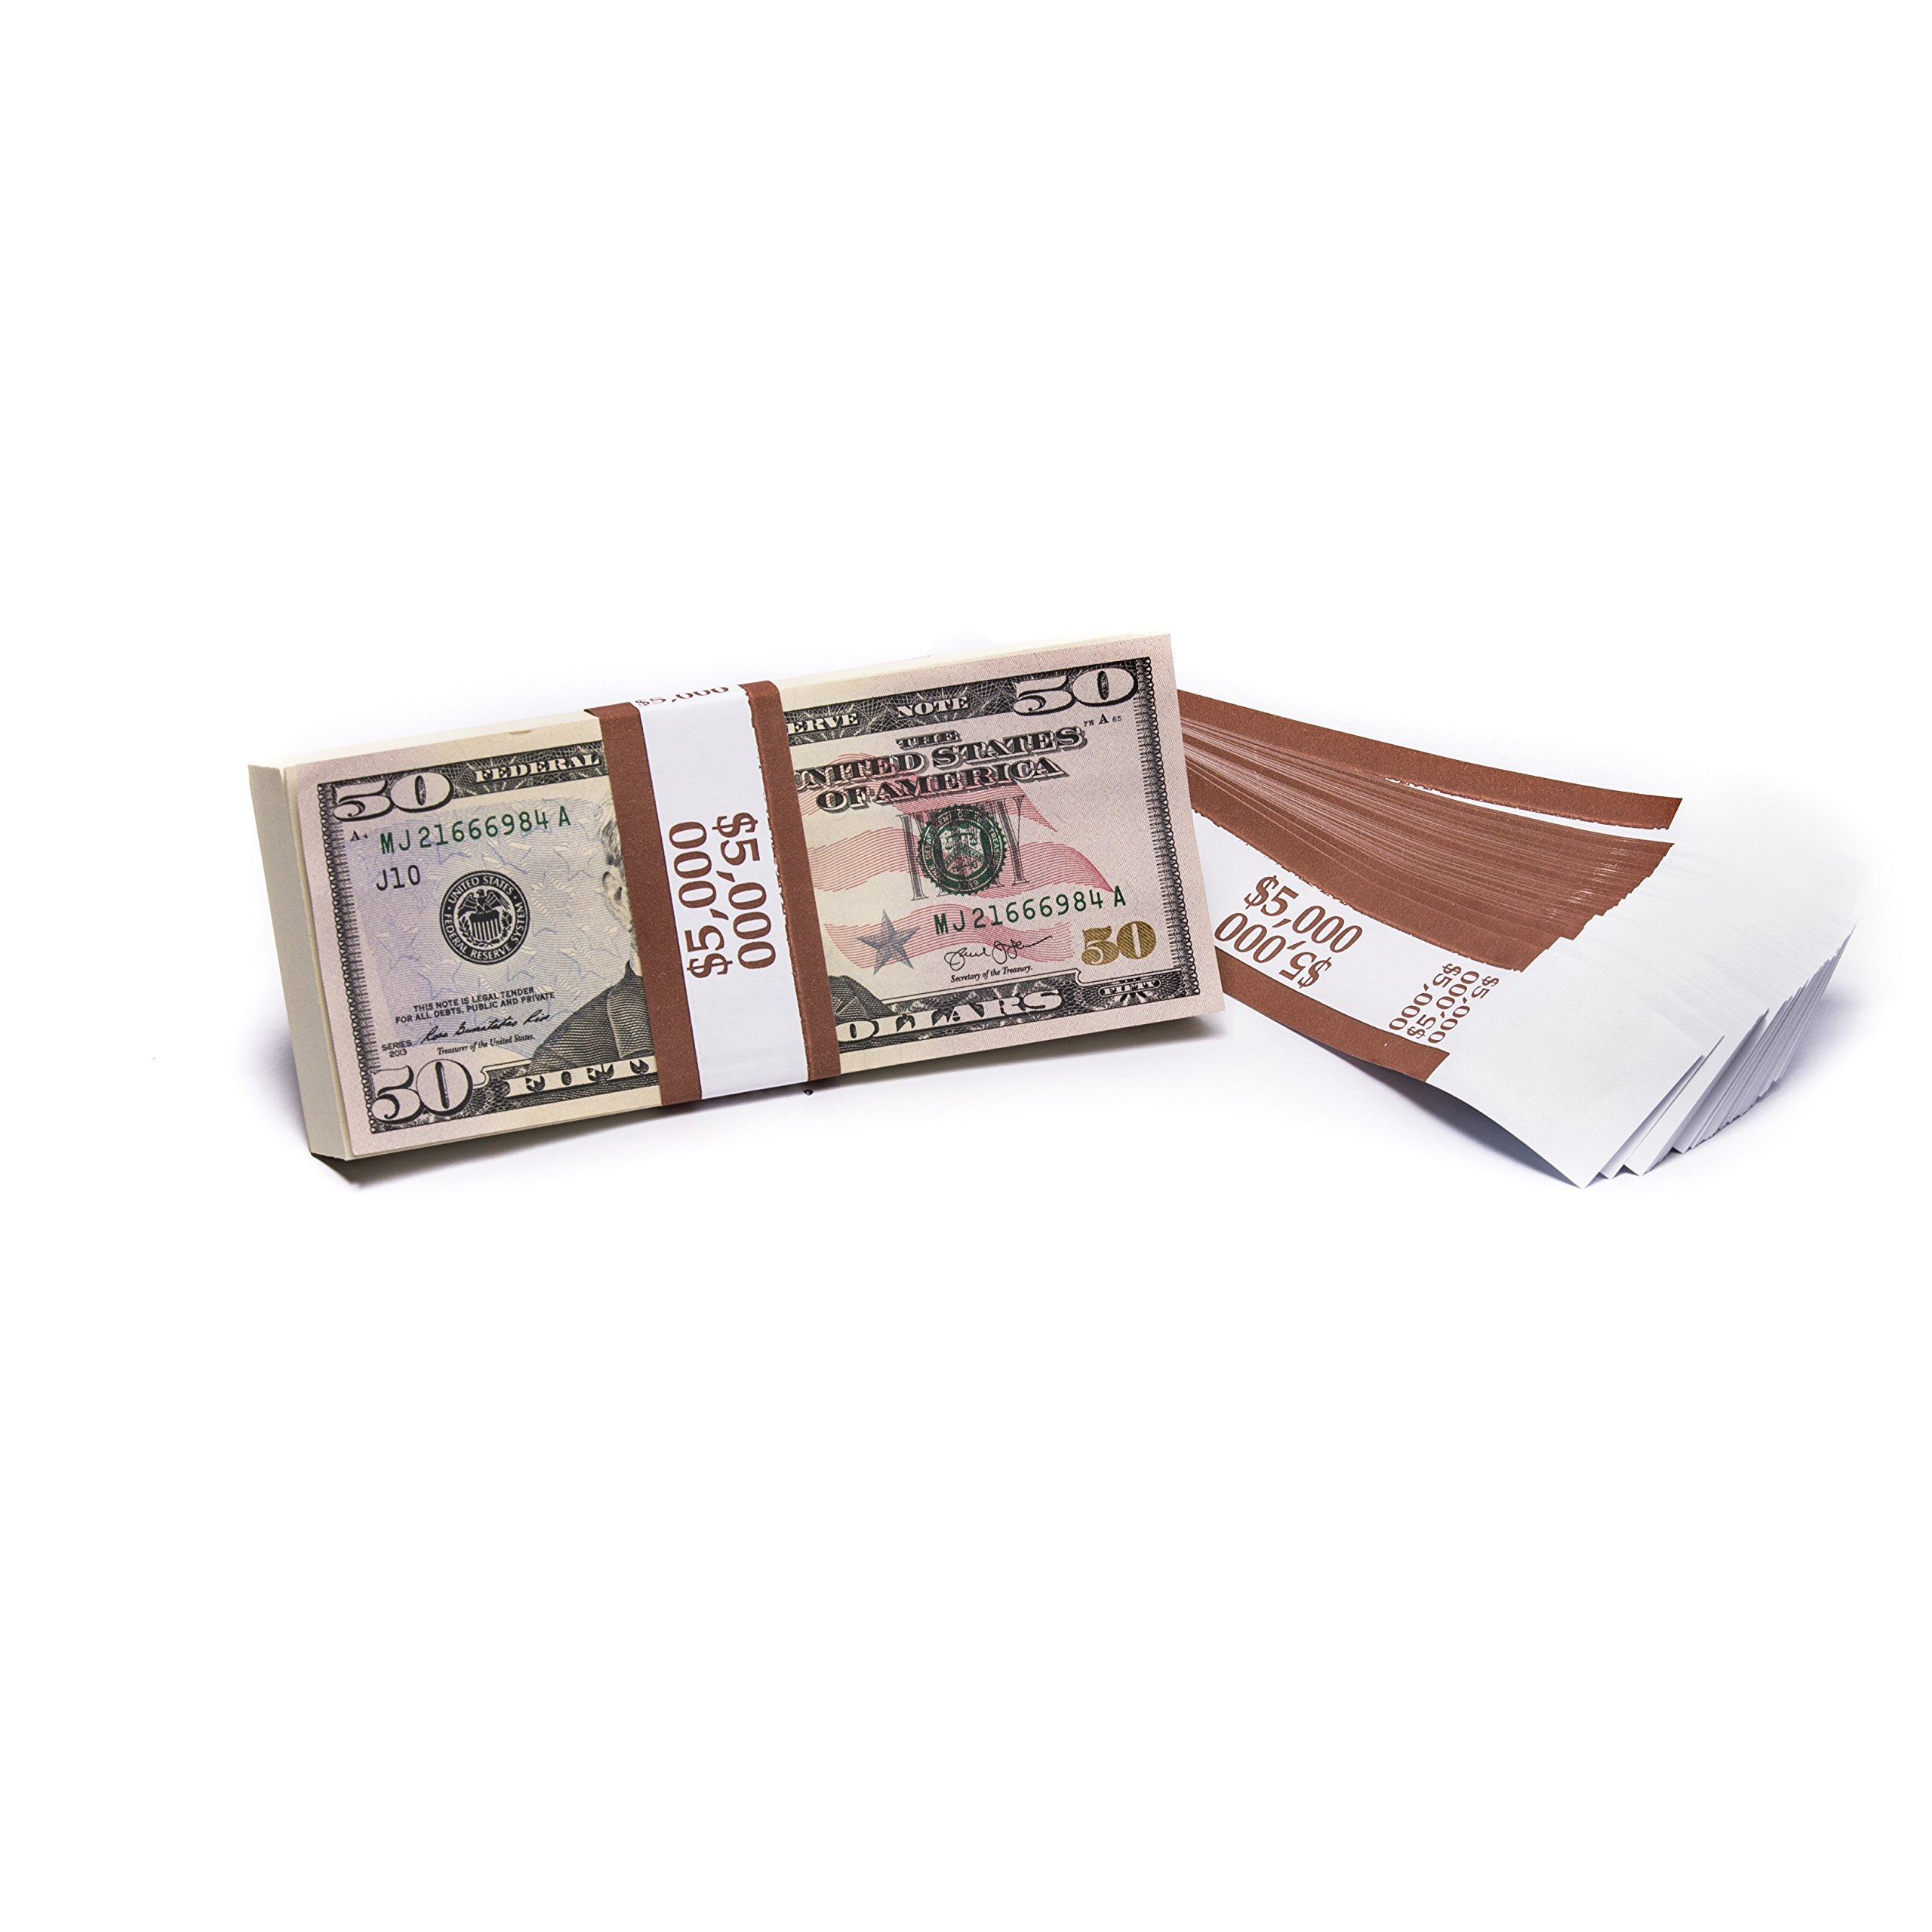 Barred ABA $5,000 Currency Band Bundles (10,000 Bands) by Carousel Checks Inc.